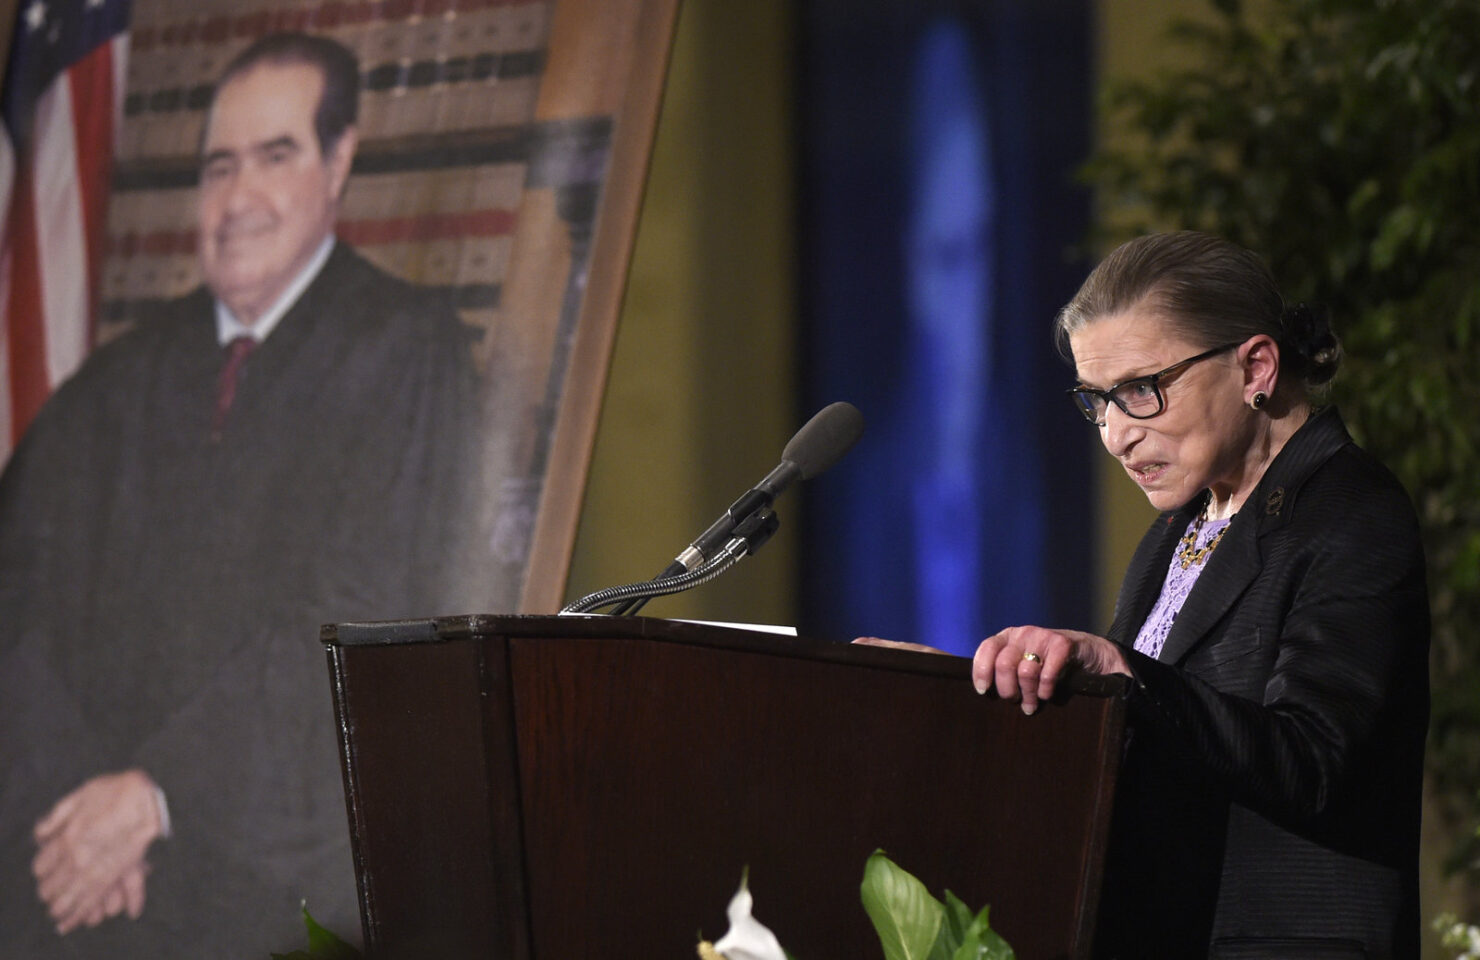 Ginsburg speaks at a memorial service for Supreme Court Justice Antonin Scalia at the Mayflower Hotel in Washington in March 2016. Susan Walsh/AP